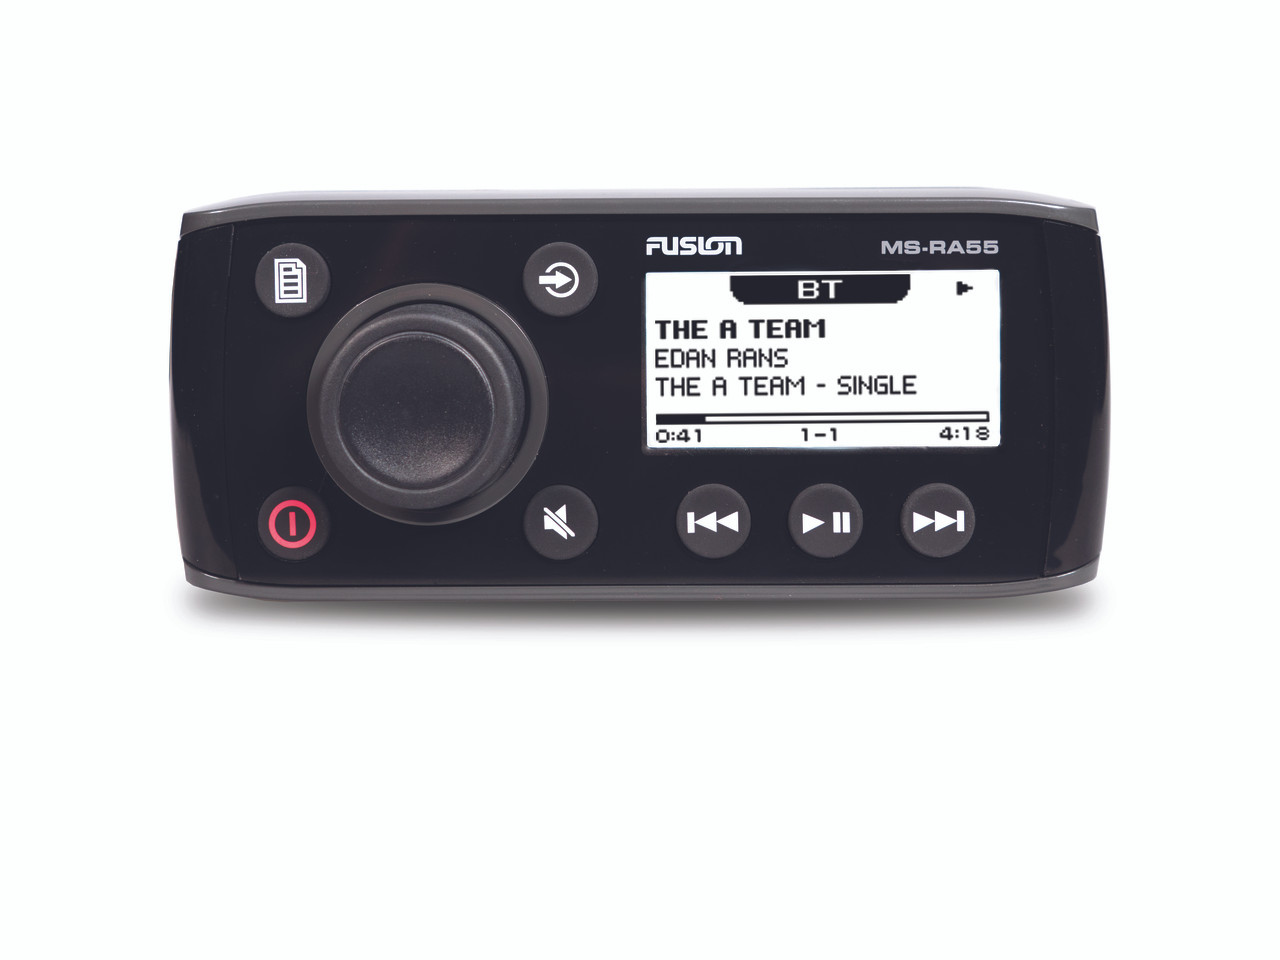 Fusion MS-RA55 Compact Marine Stereo with Bluetooth